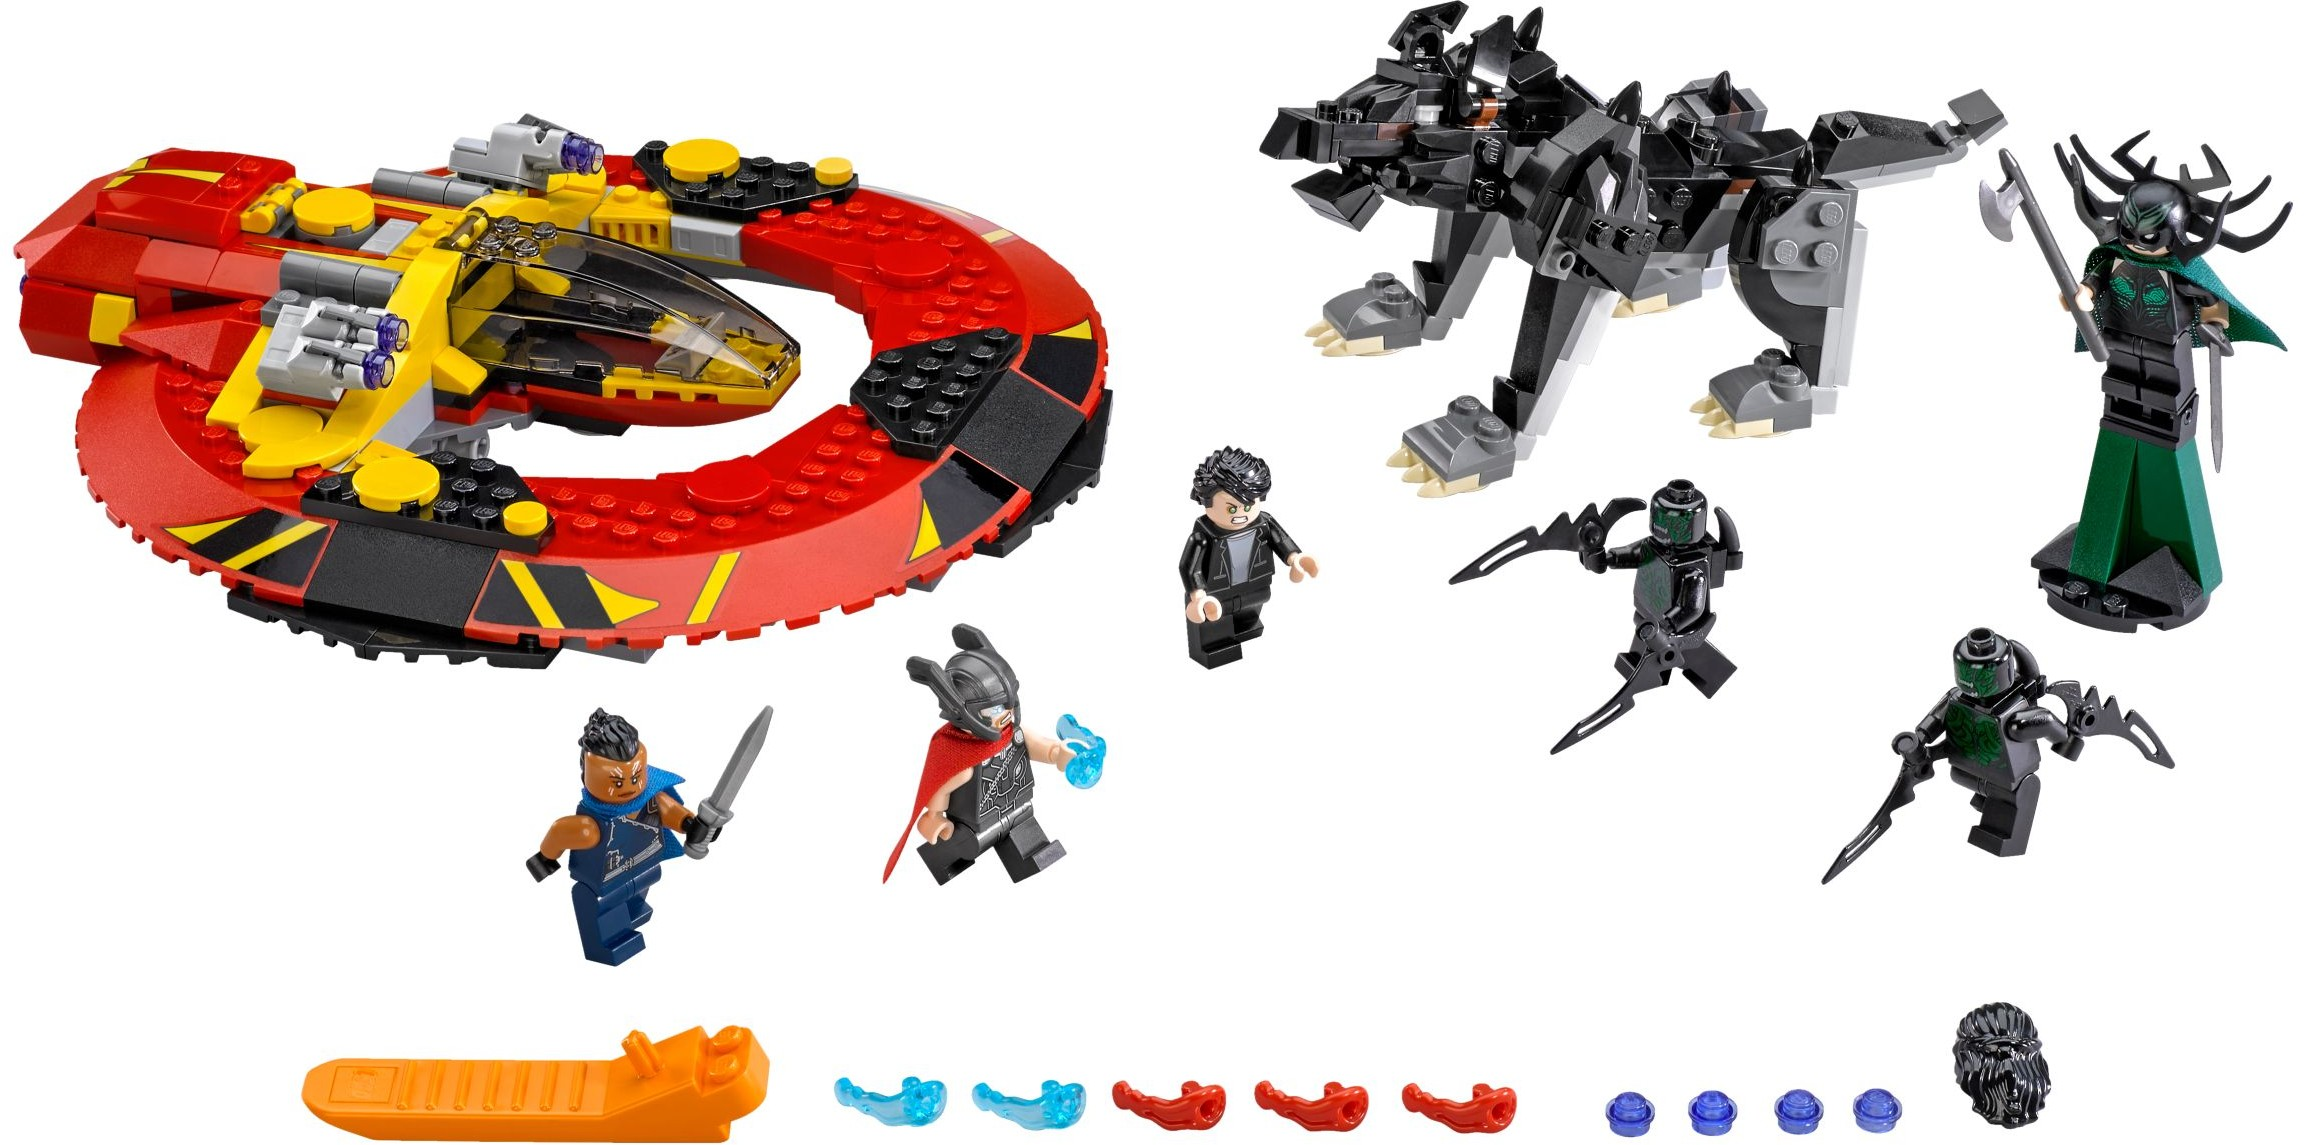 Thor:Ragnarok first images | Brickset: LEGO set guide and ...